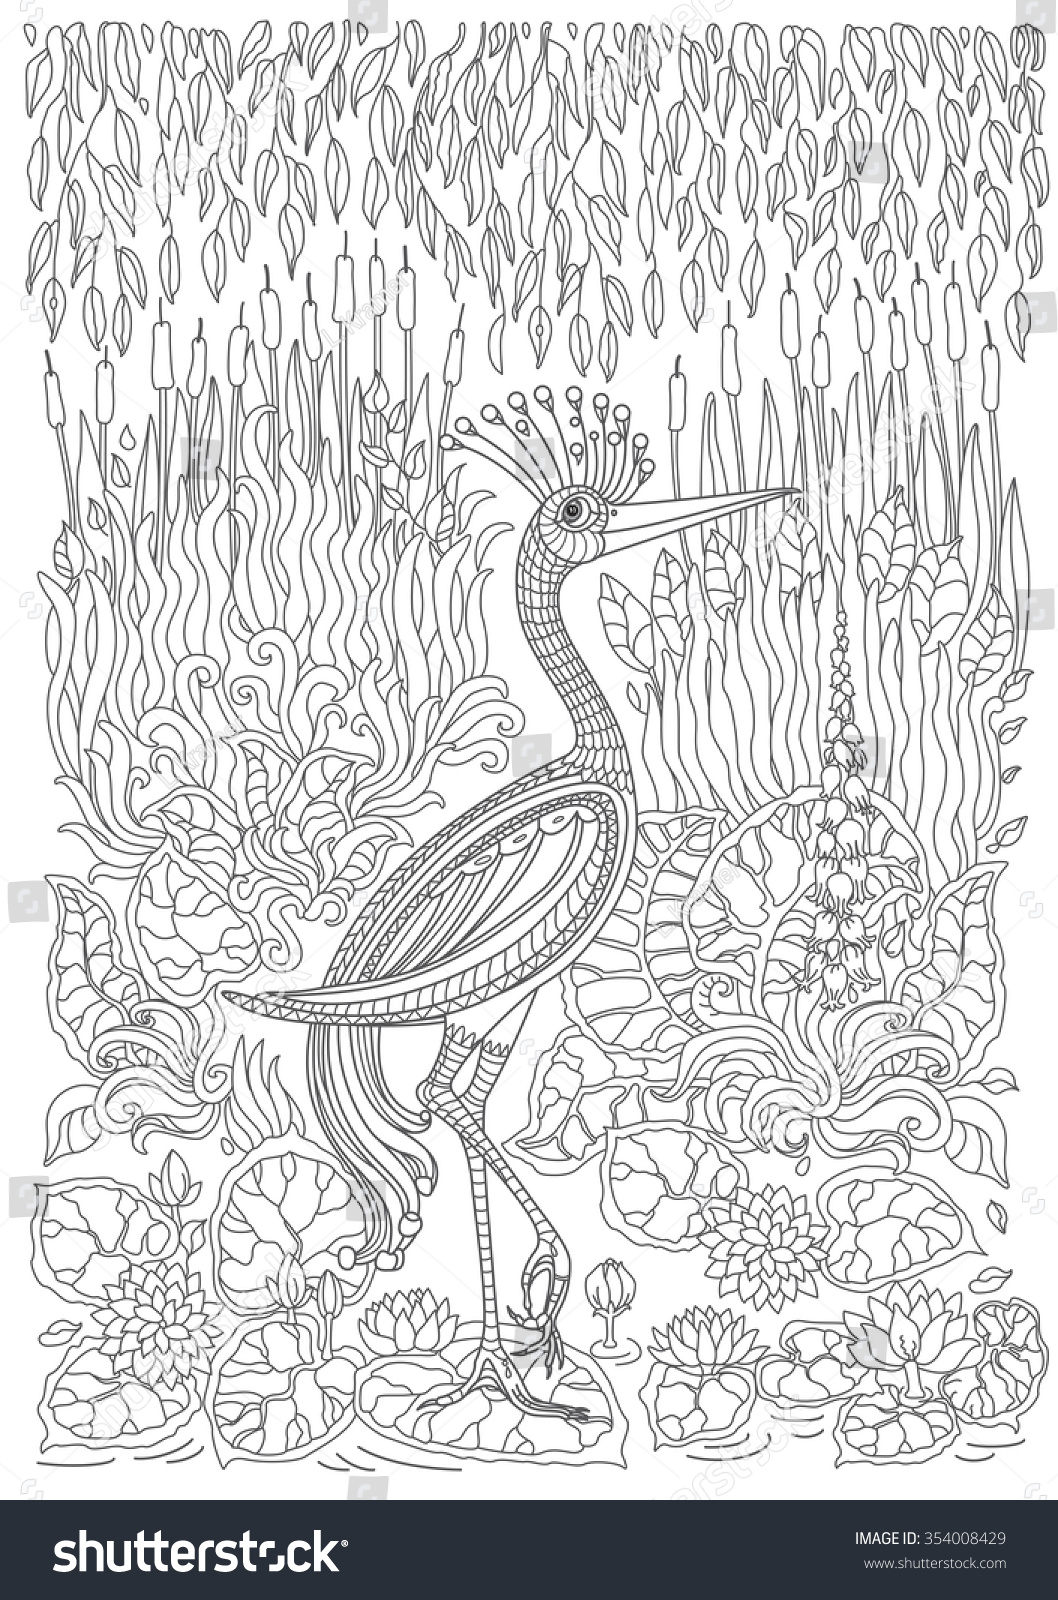 Contour Line Drawing Bird : Images about animaux à plumes on pinterest